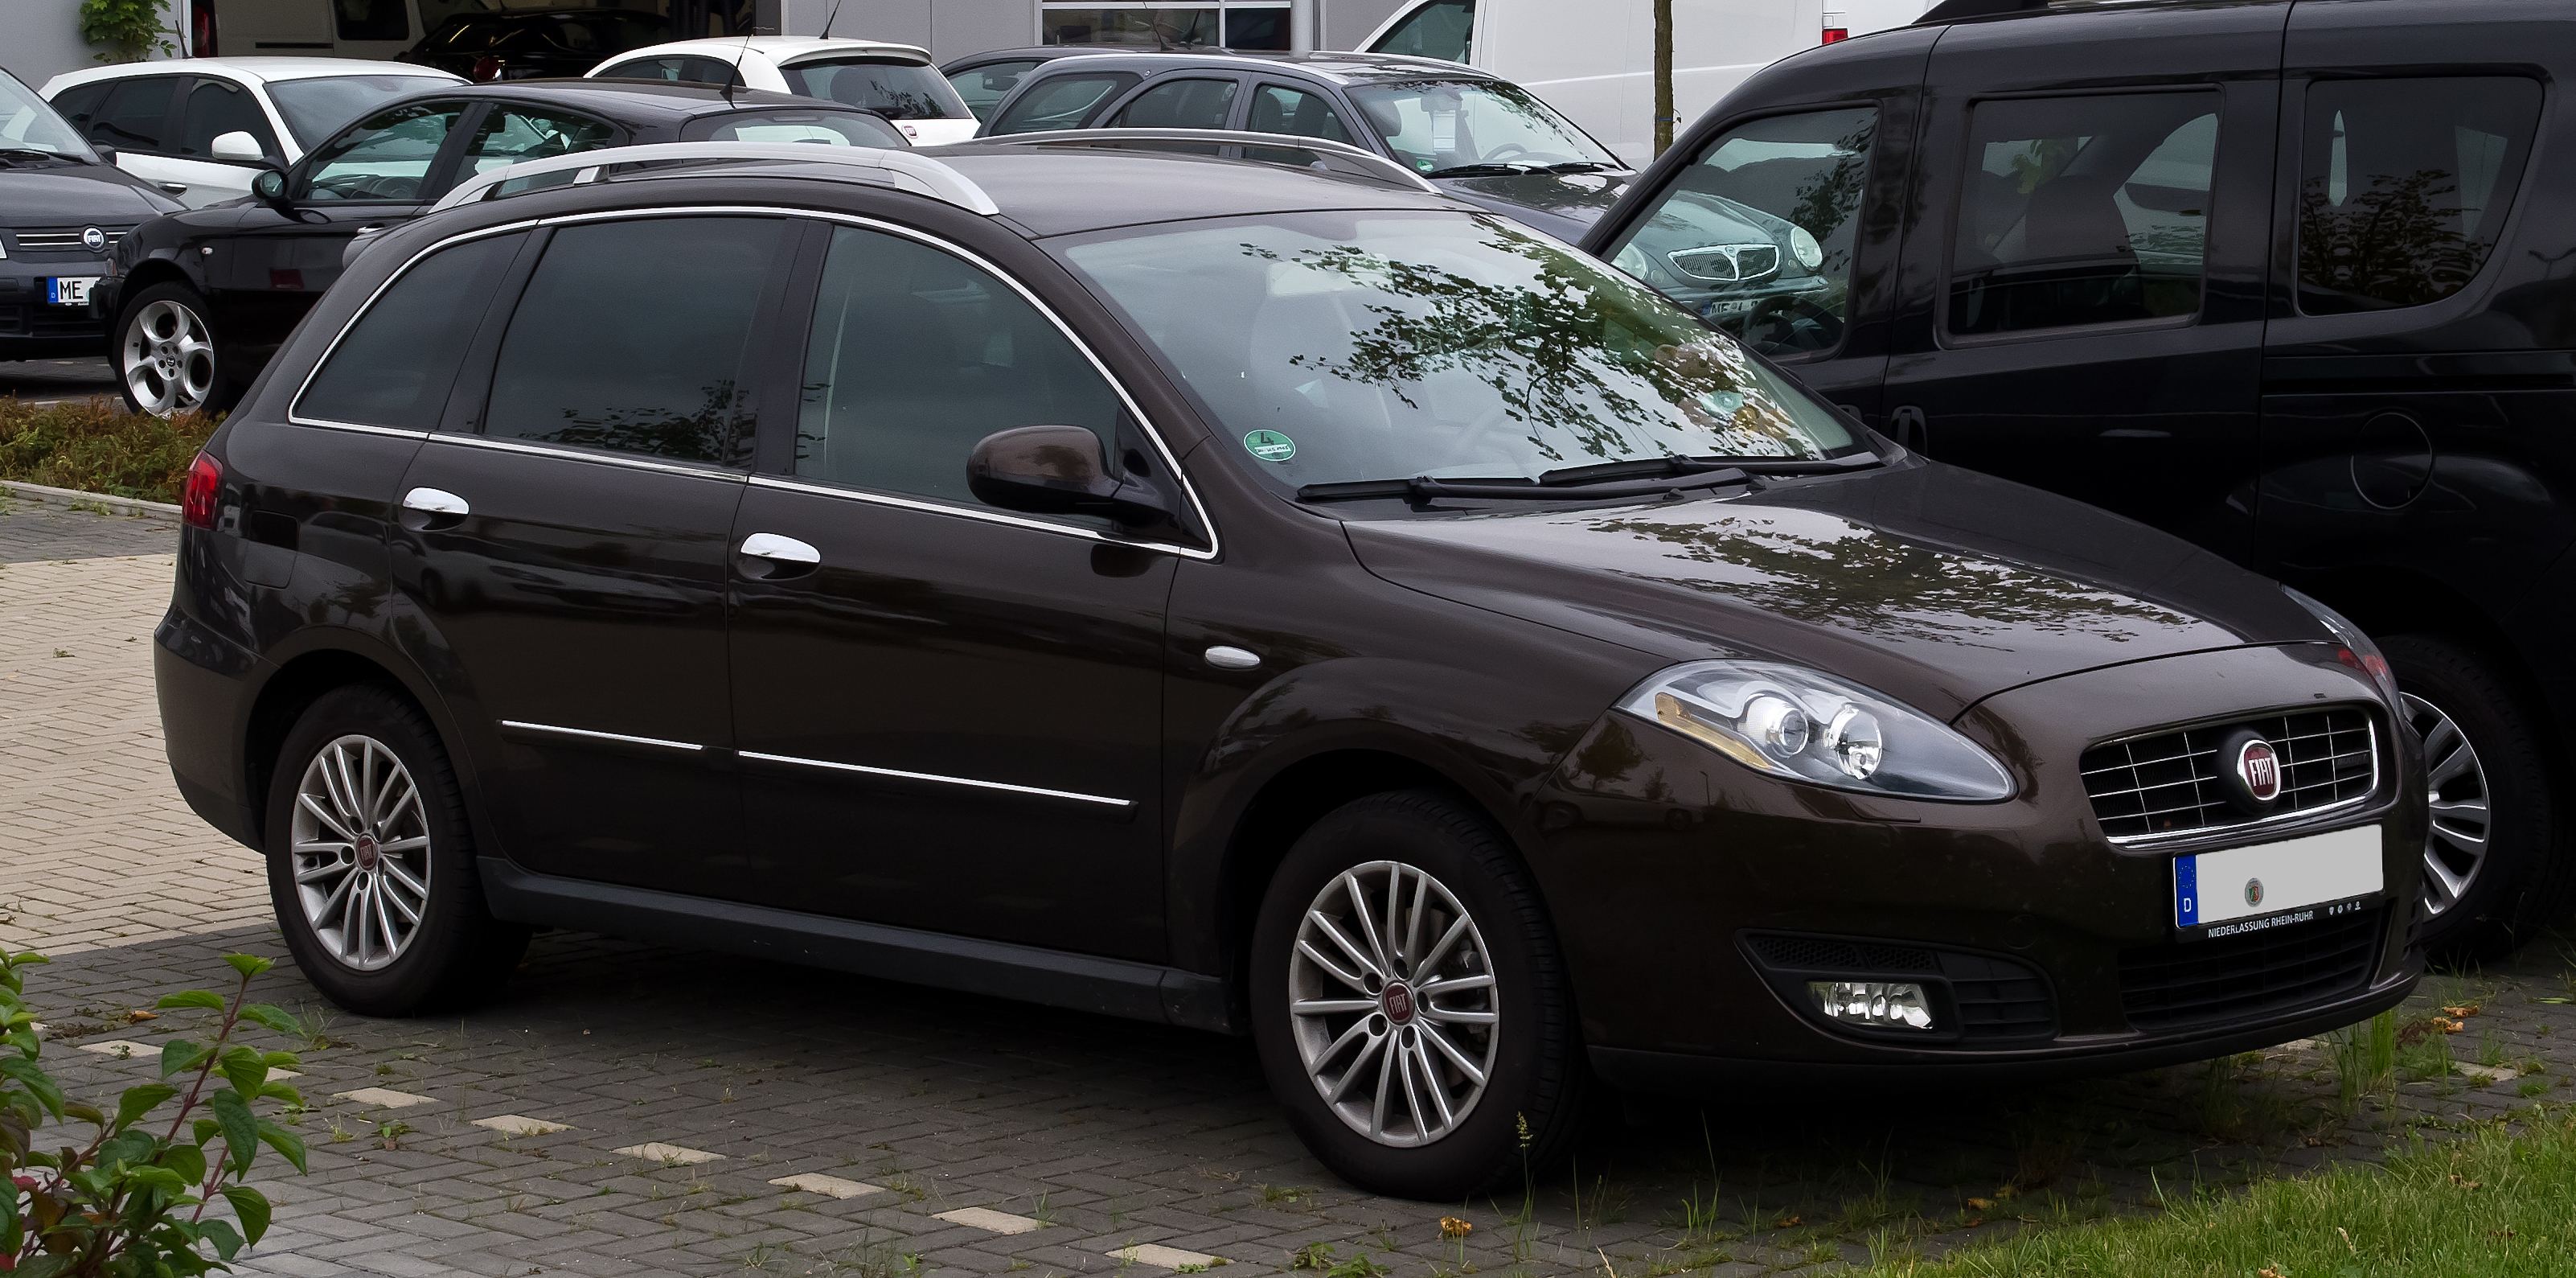 Pictures of fiat croma #2